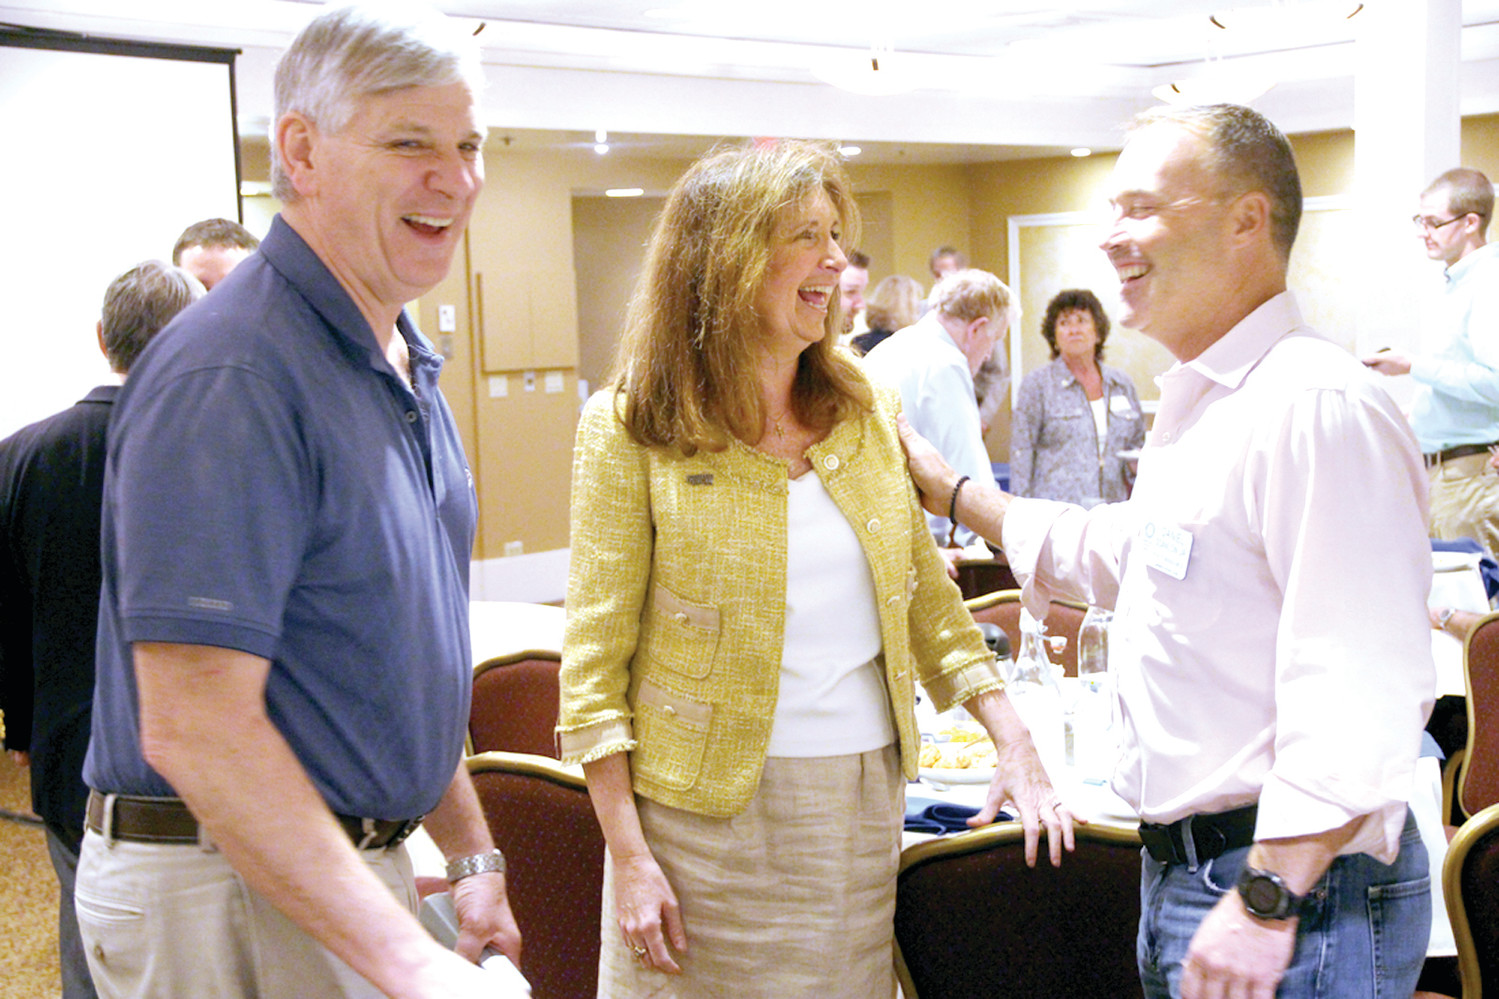 TALKING ABOUT SERVICE: GOP mayoral candidate Sue Stenhouse talks with Warwick Rotarians Steve Hinger and Dan Scanlon after she addressed the club at their Thursday luncheon meeting.